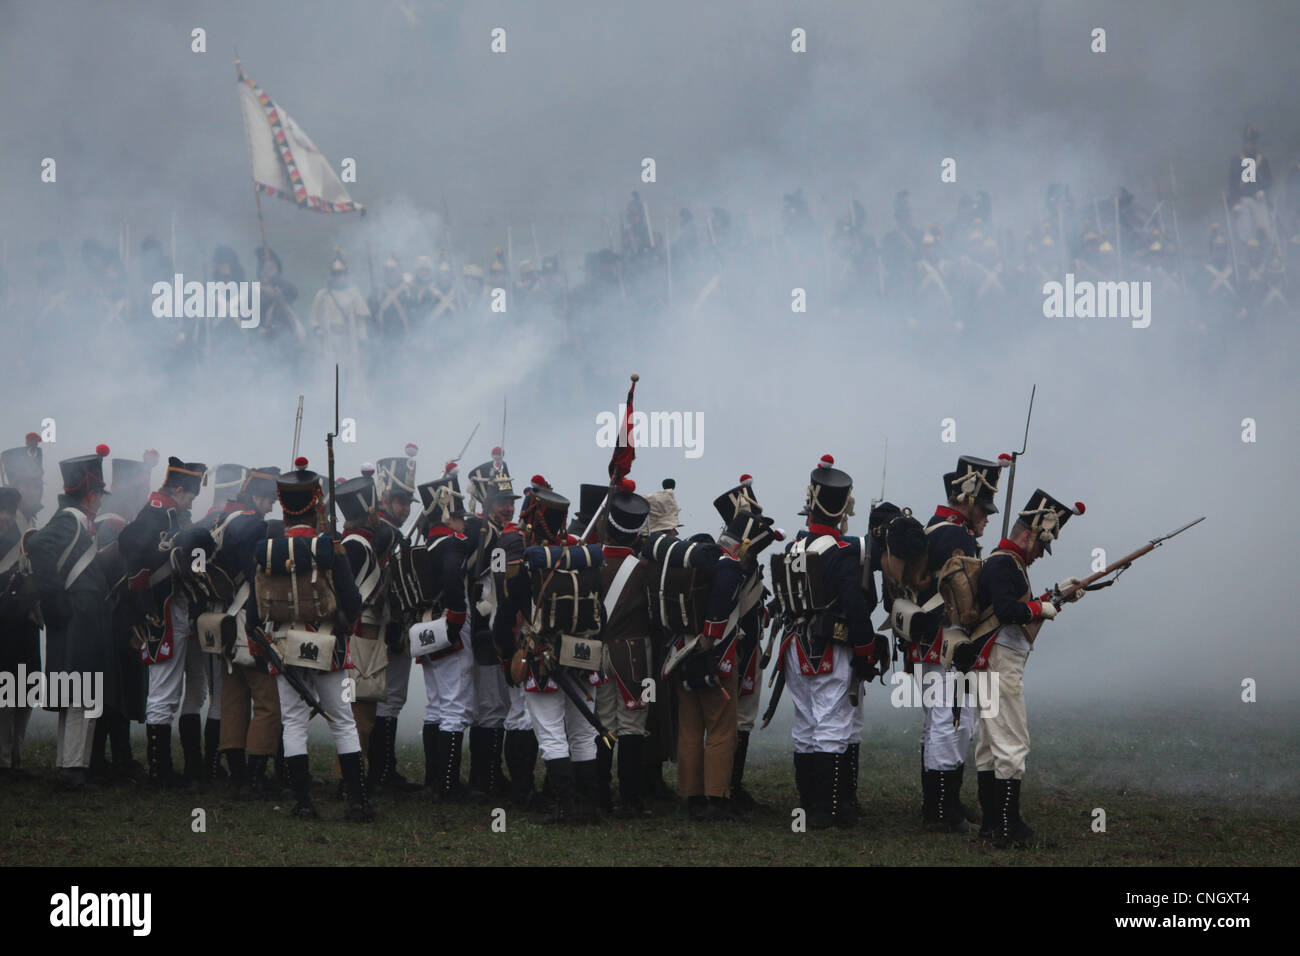 Re-enactment of the Battle of Austerlitz (1805) at Santon Hill near the village of Tvarozna, Czech Republic. - Stock Image